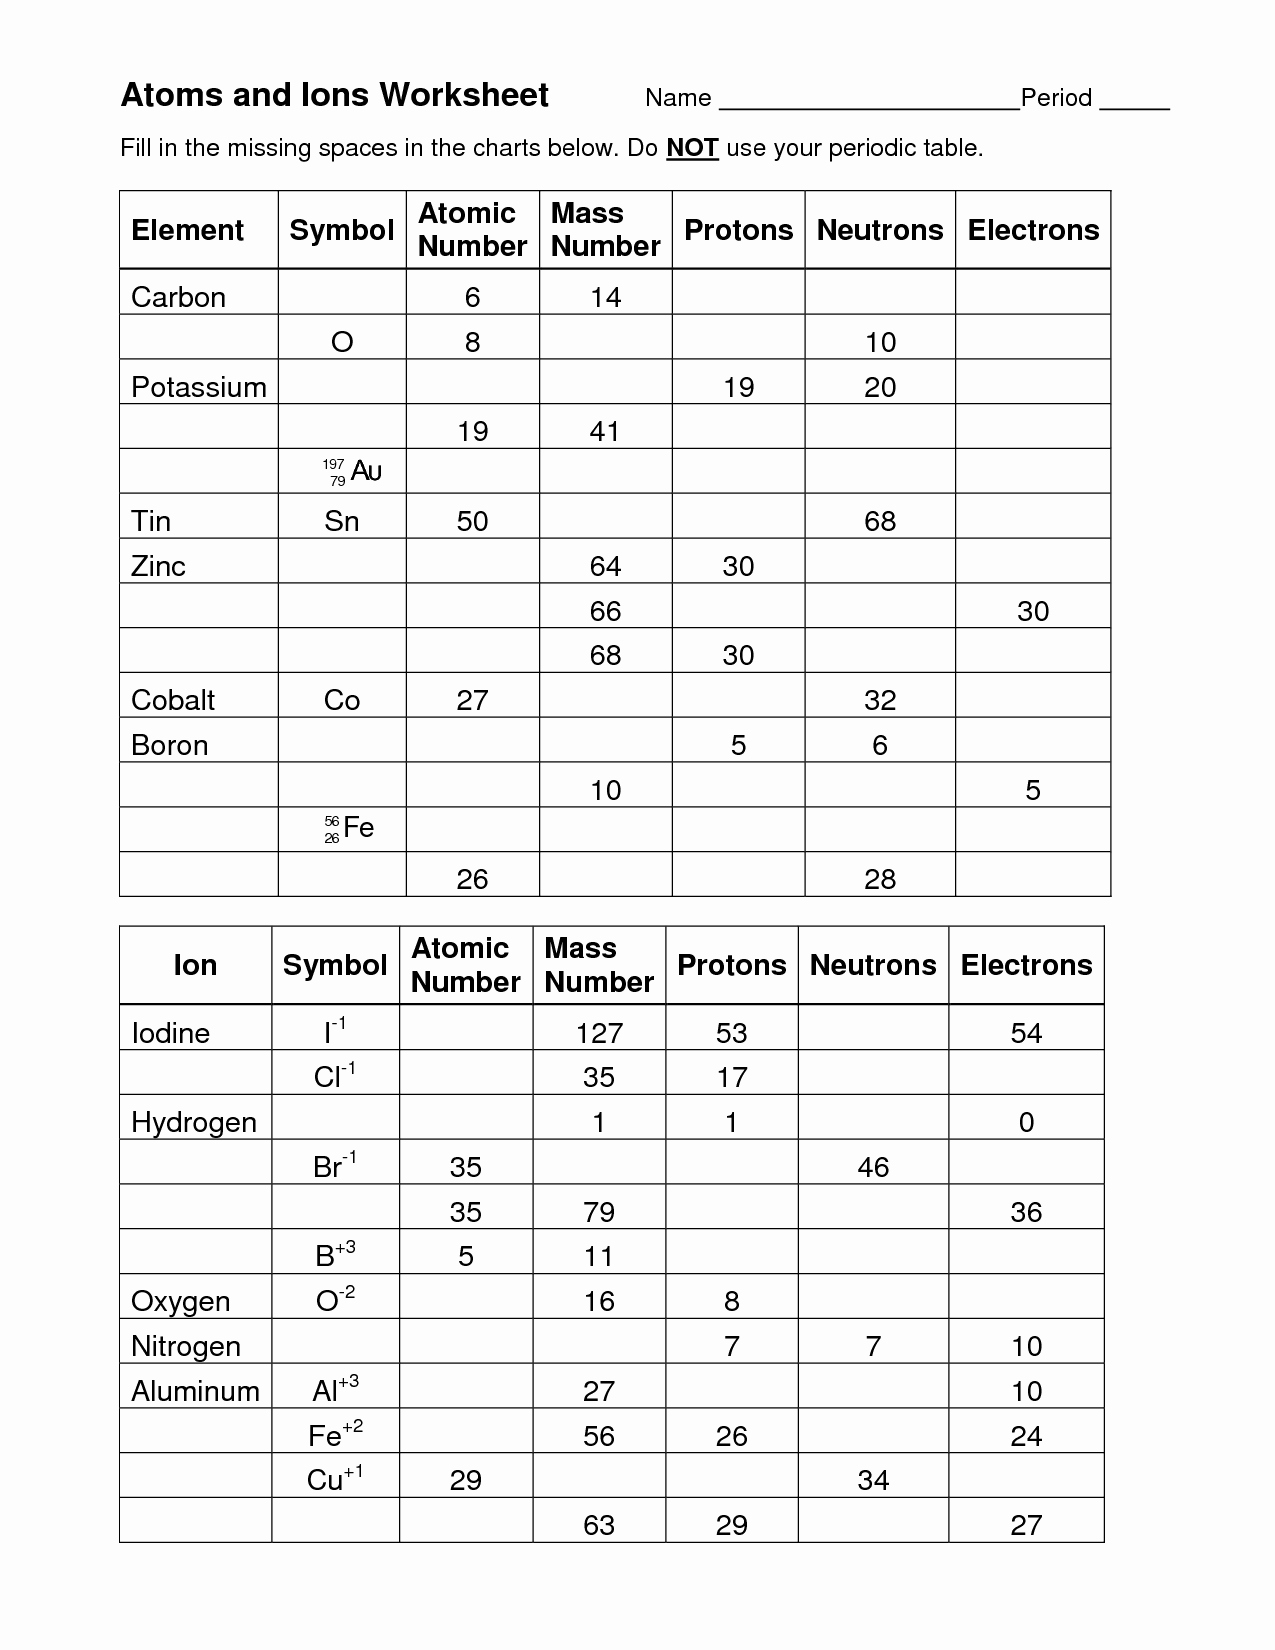 Atoms Vs.ions Worksheet Answers Unique 13 Best Of Element Symbols Worksheet Answer Key